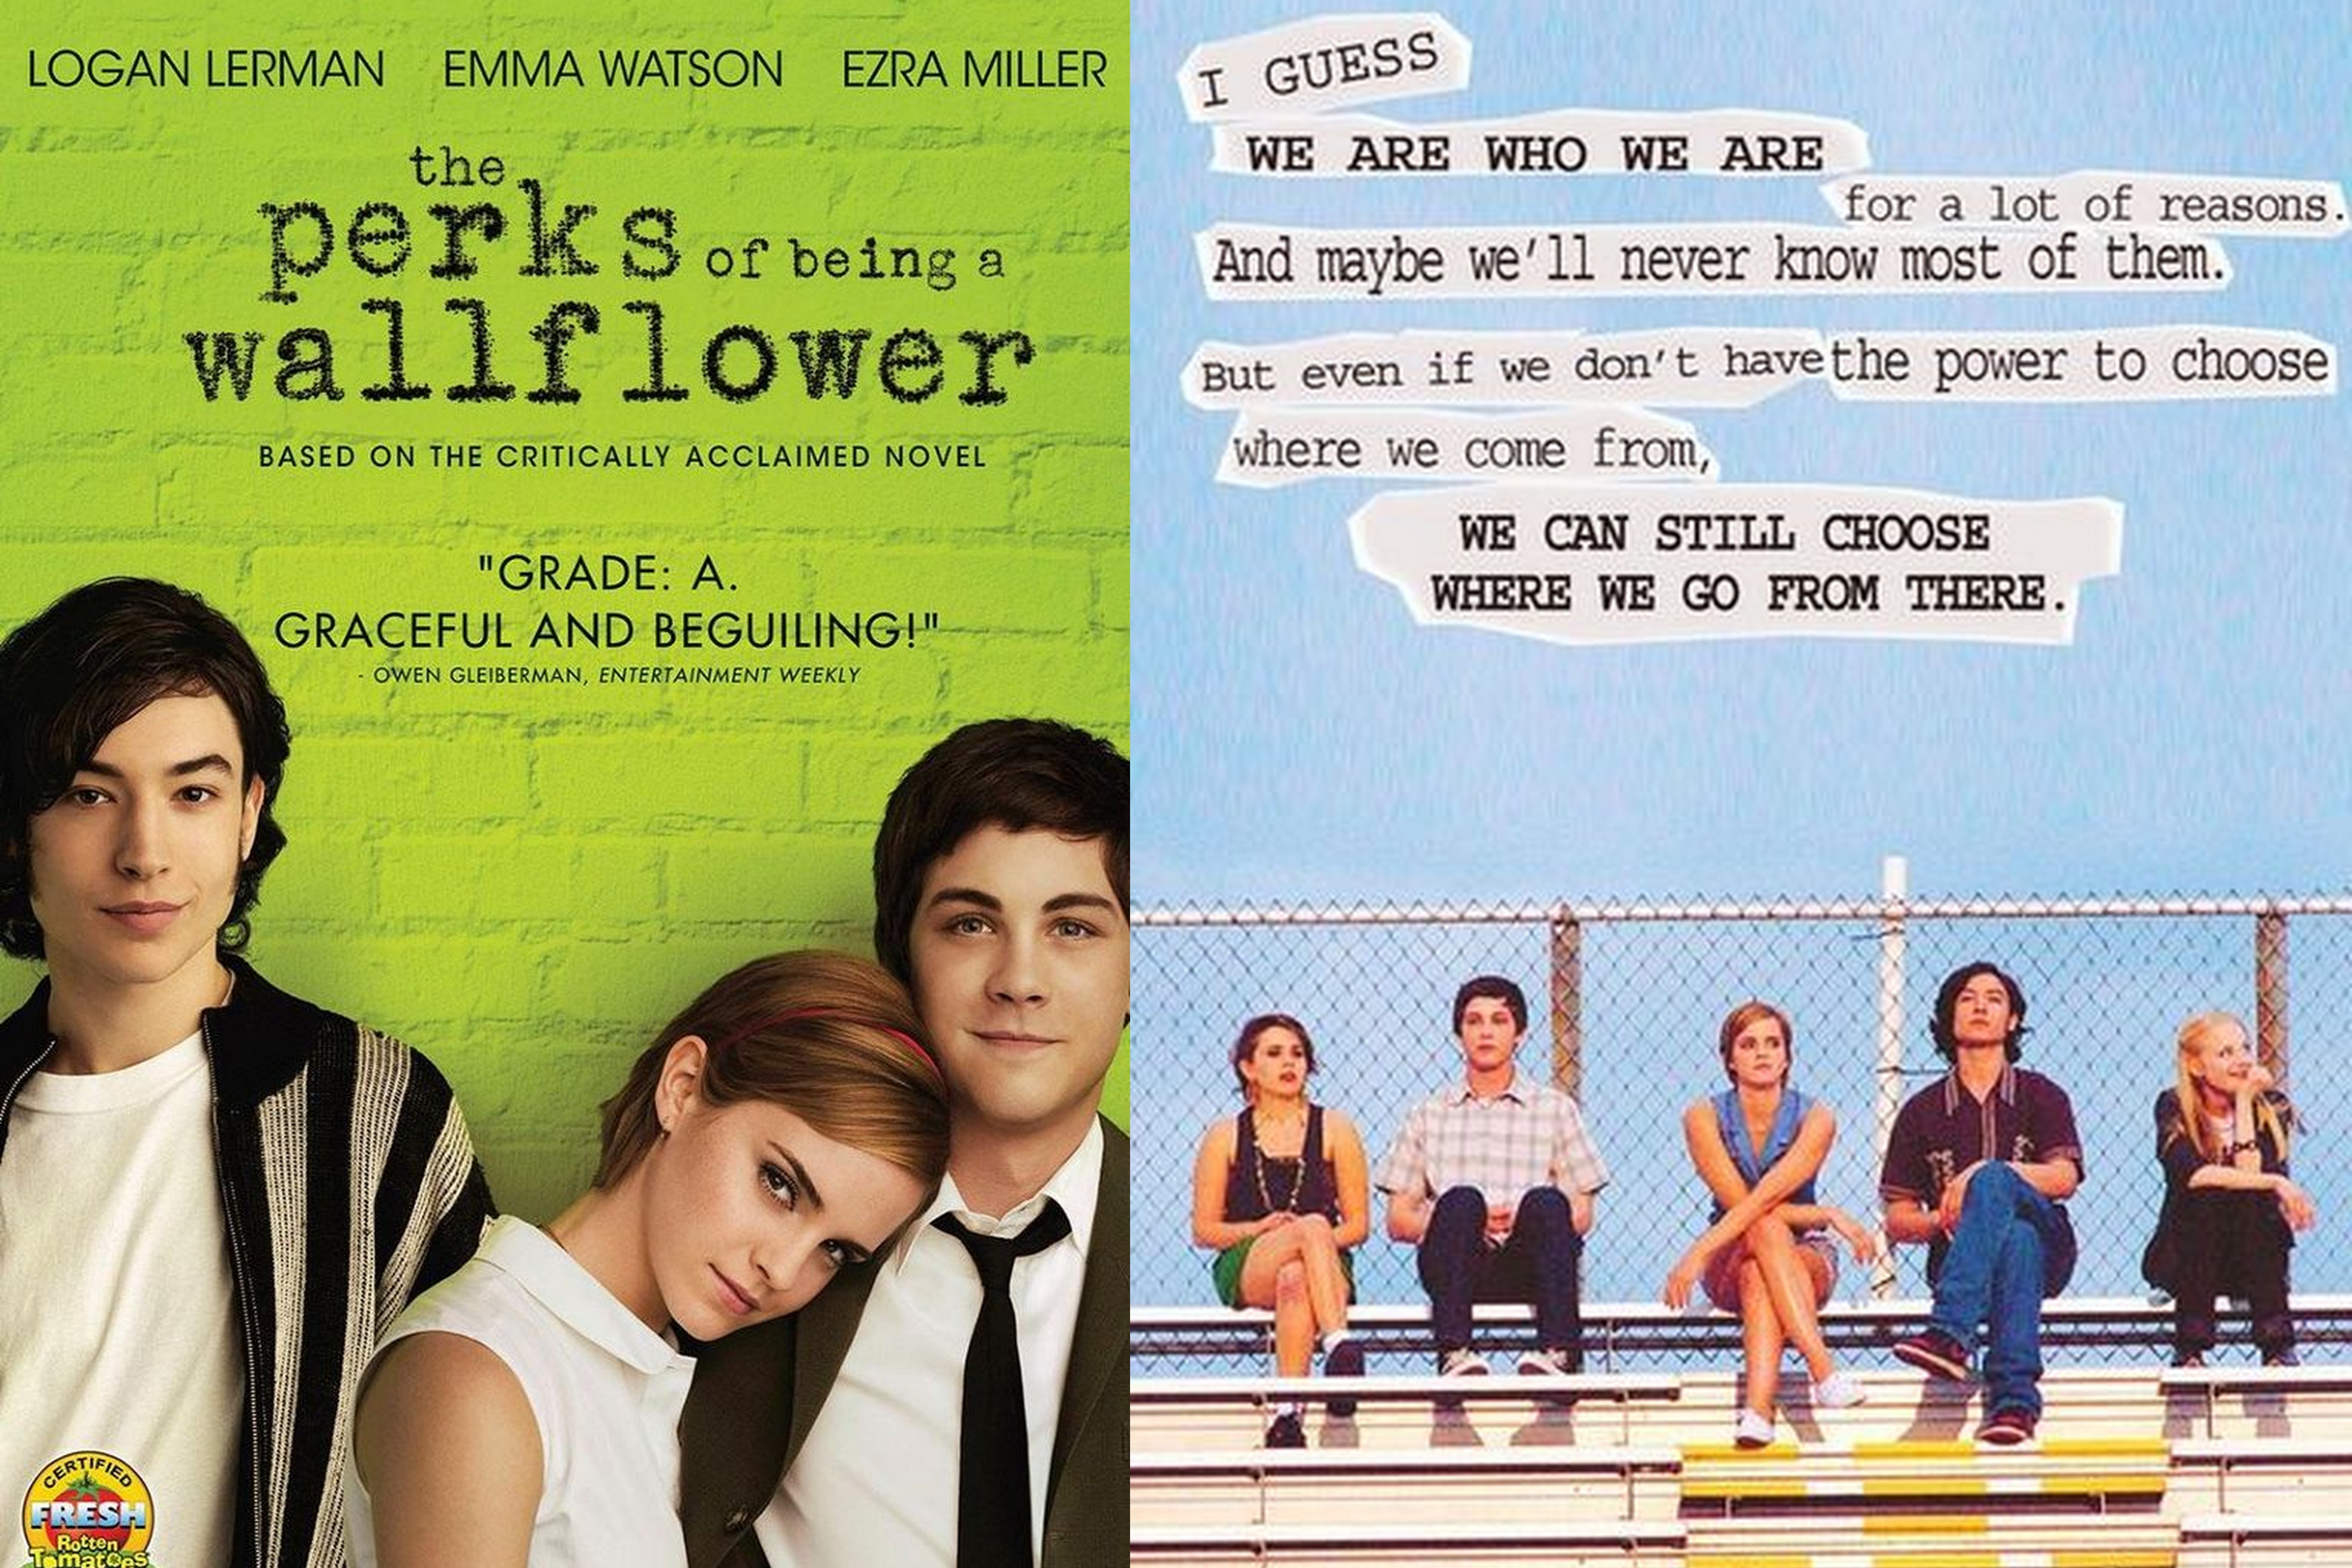 perks of being a wallflower essay The perks of being a wallflower in the novel, there are many instances in which drugs and alcohol are used, either out of curiosity or to stray away from a problem charlie is exposed to many drugs like marijuana, lsd, cigarettes and alcohol.